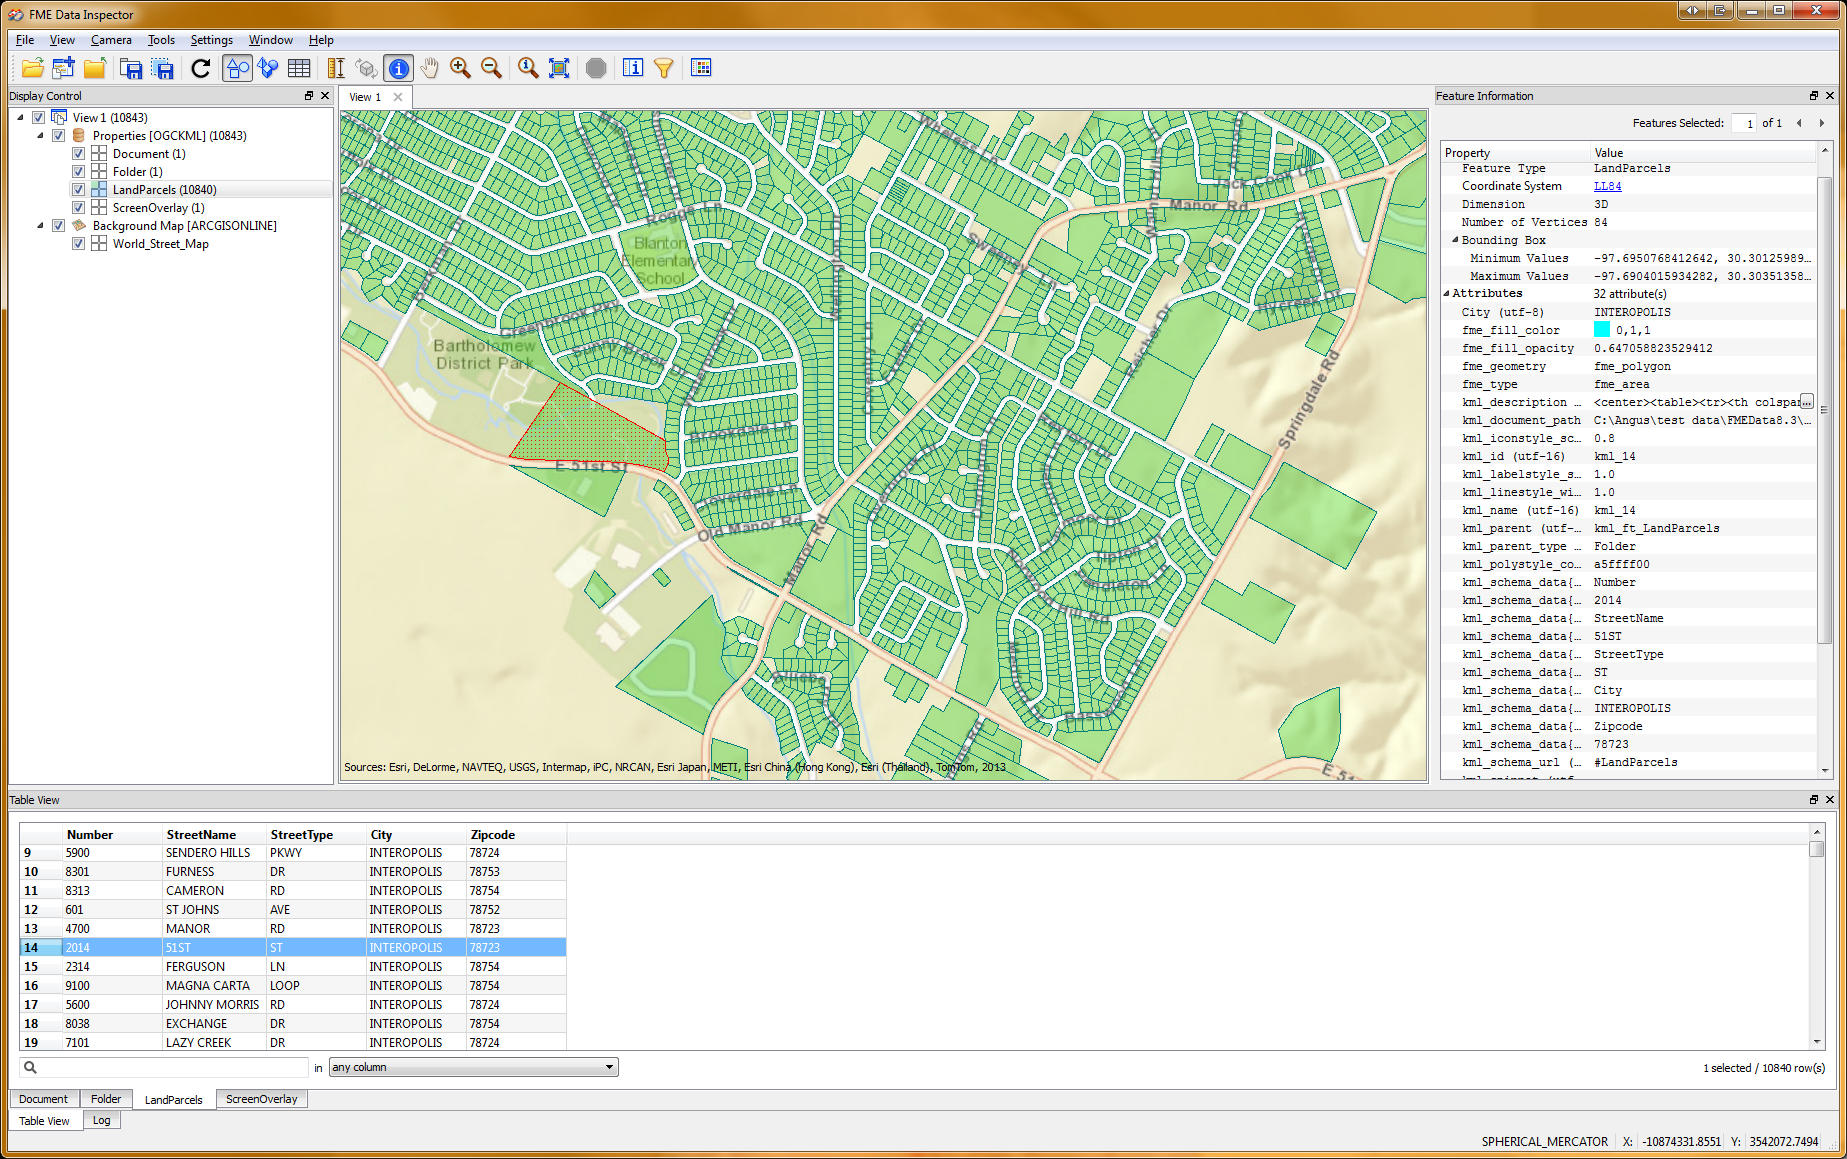 ArcGIS Online Basemap in the FME Data Inspector